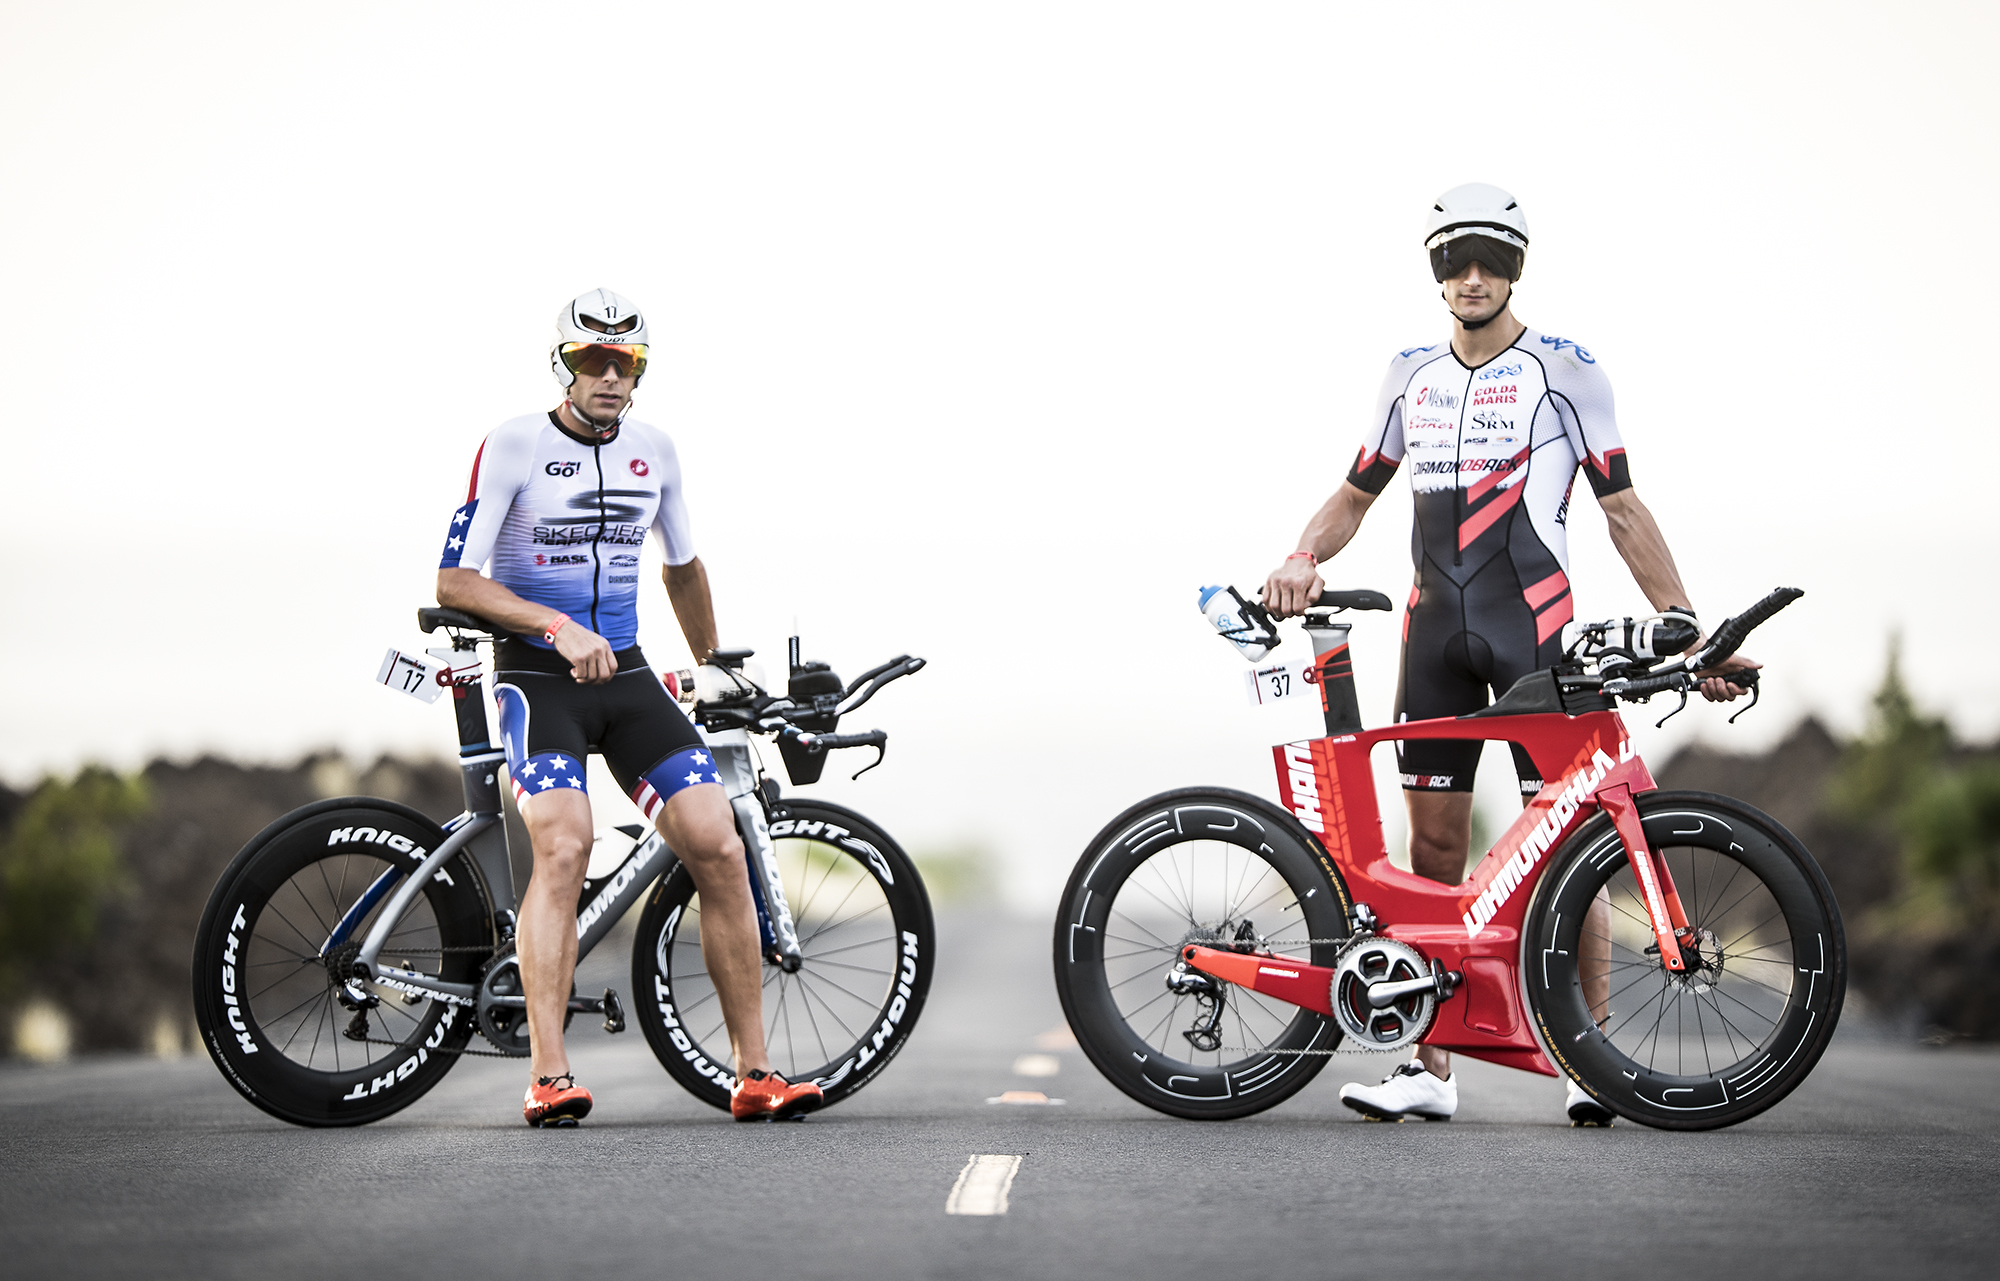 Matt Russell and Michi Weiss are ready for Kona